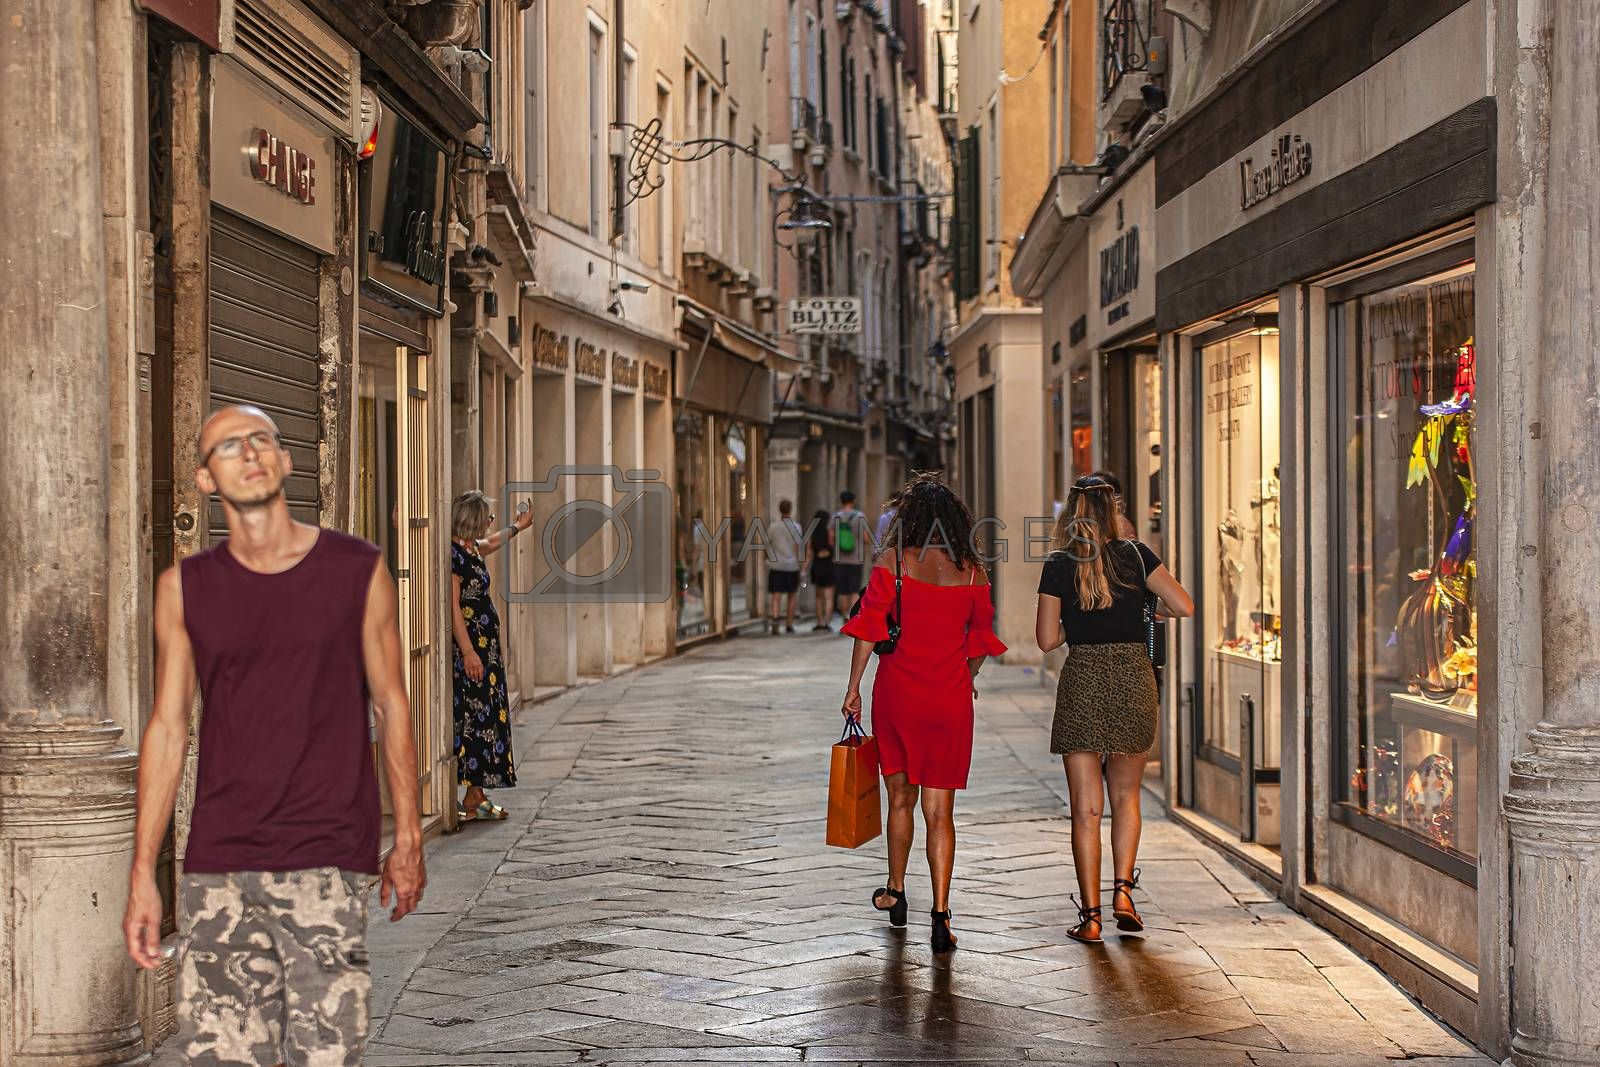 VENICE, ITALY 2 JULY 2020: People in Venice alley